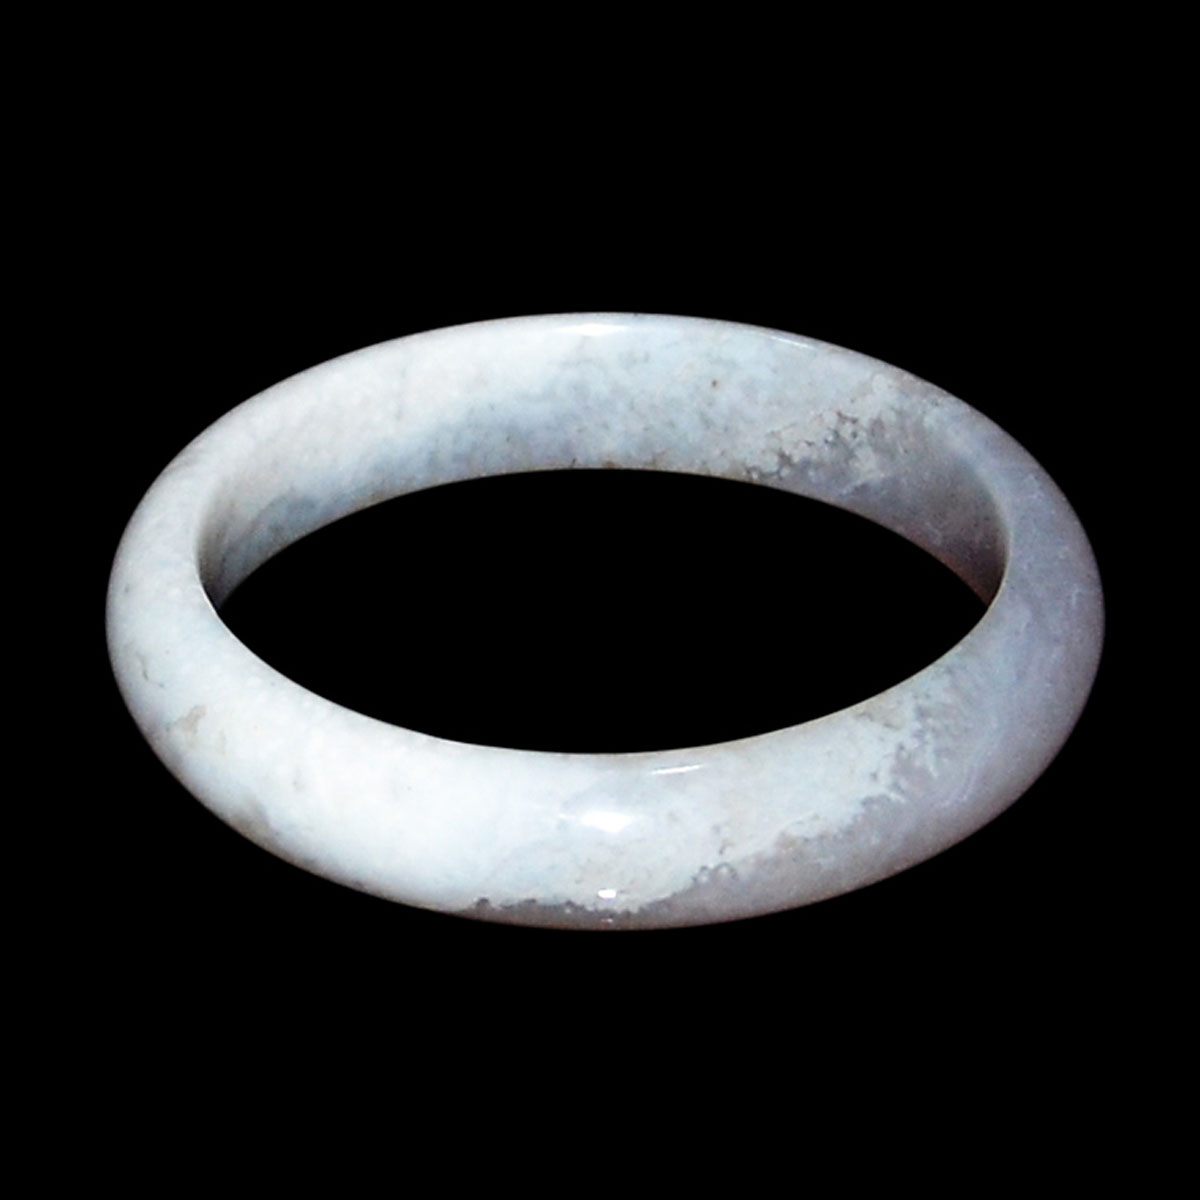 冰種紫羅蘭玉鐲 Glass Jadeite Lavender Bracelet. Diameter: 2¼ in (5.7 cm)  Weight: 40 g. Starting Price: $